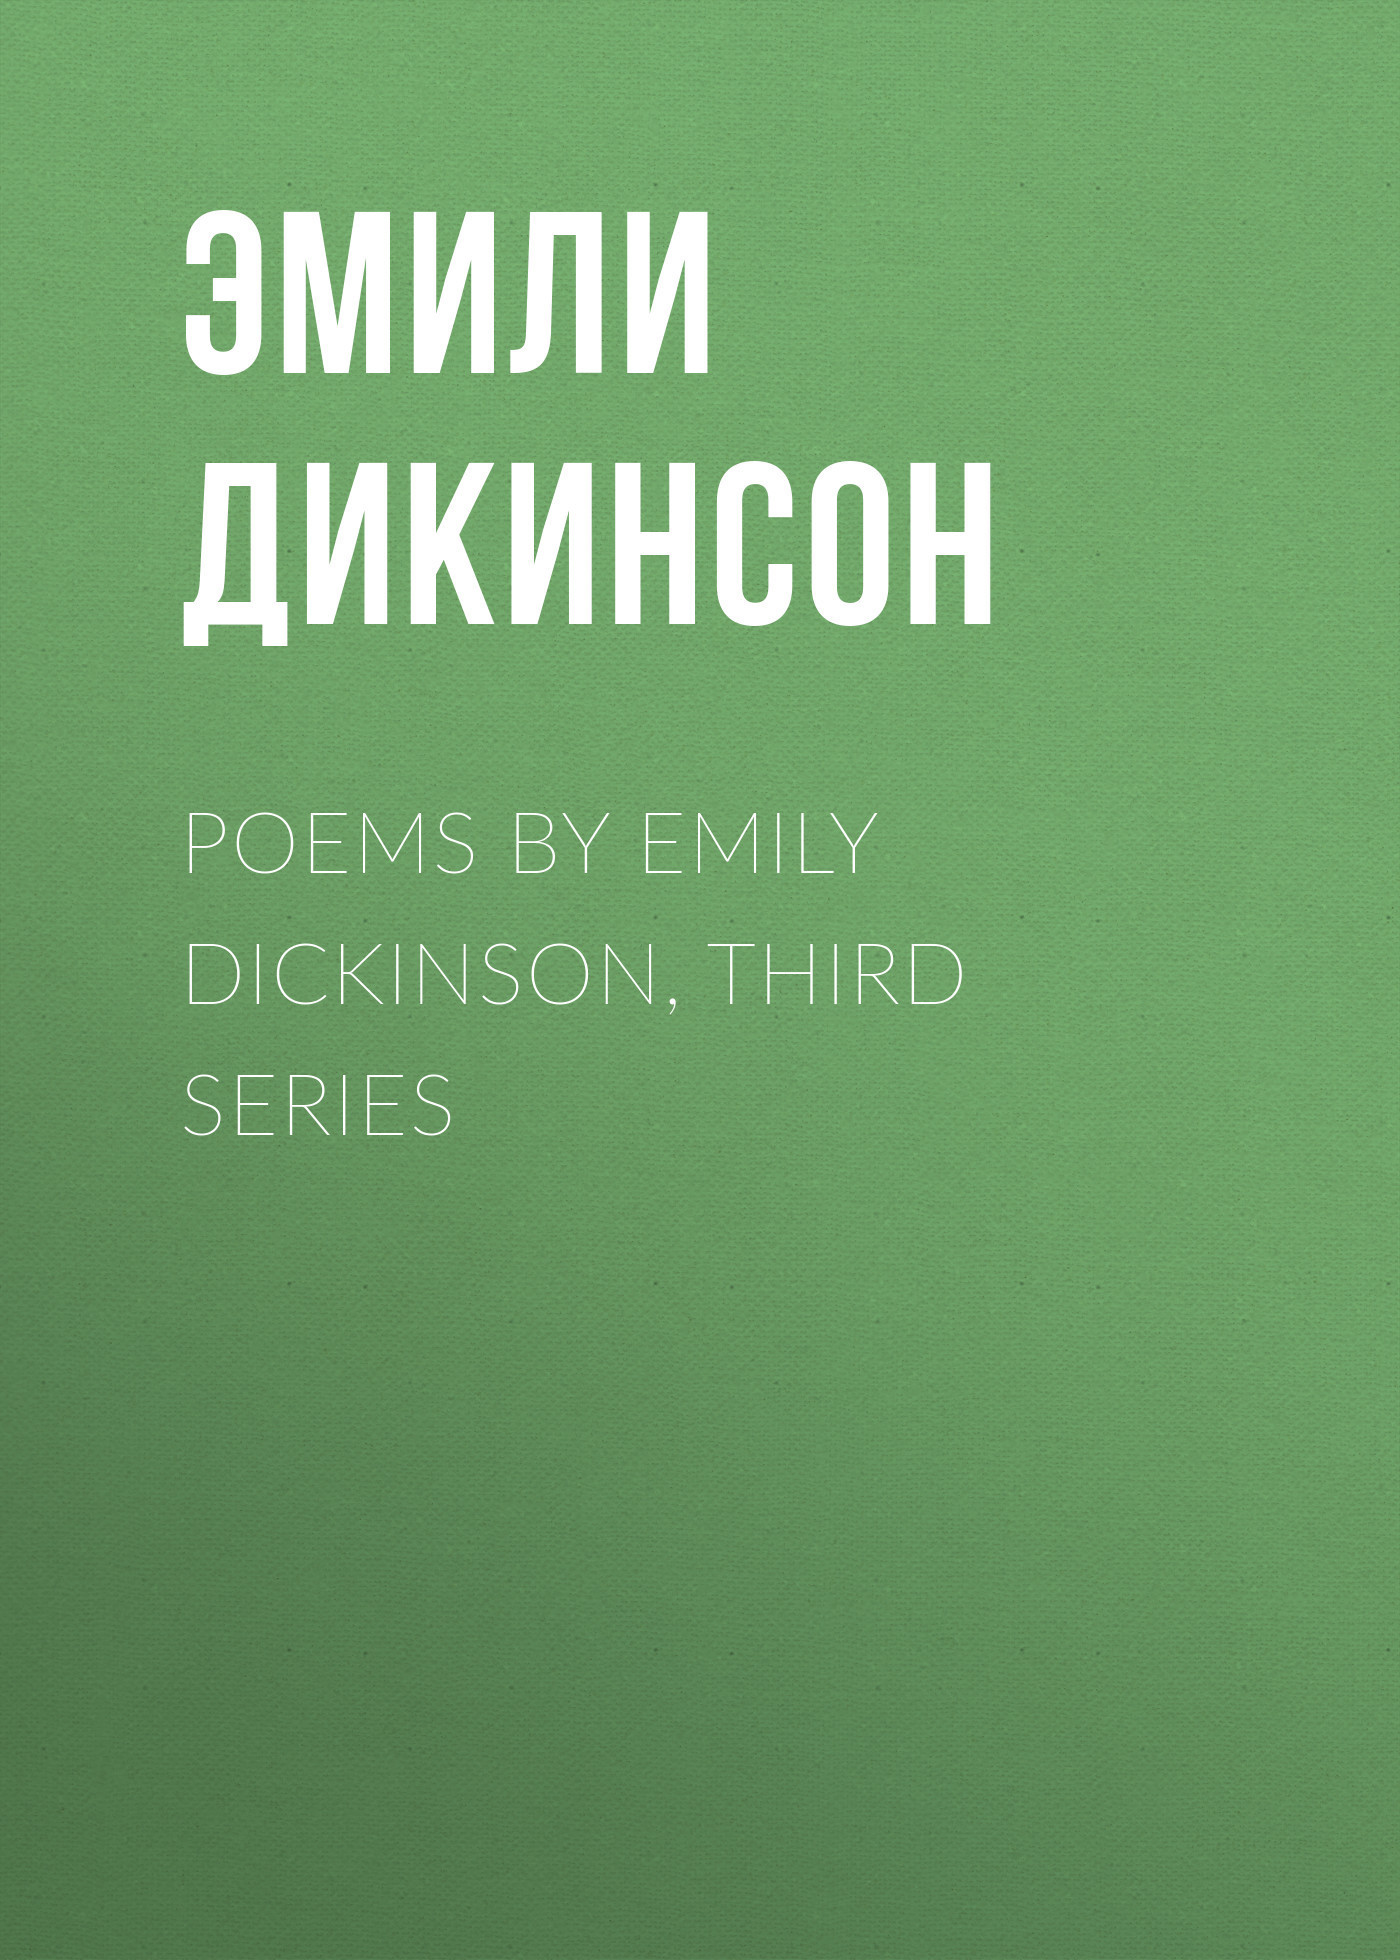 Эмили Дикинсон Poems by Emily Dickinson, Third Series эмили дикинсон дорога в небо перевод с